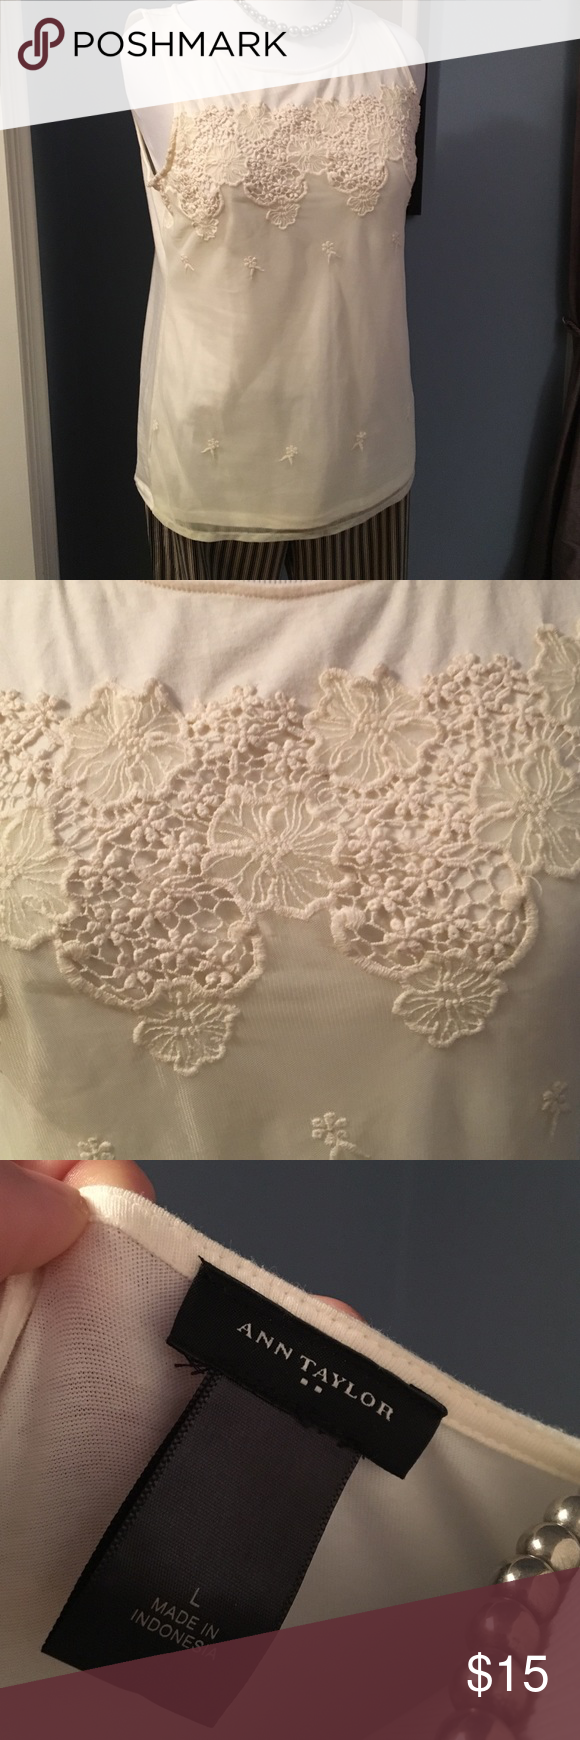 Ann Taylor Romantic Lace Floral Tank Top sz L Sheer lace floral overlay on cream colored stretchy tank top. Cotton/spandex tank with sheer nylon overlay on the front. NWOT Ann Taylor Tops Tank Tops